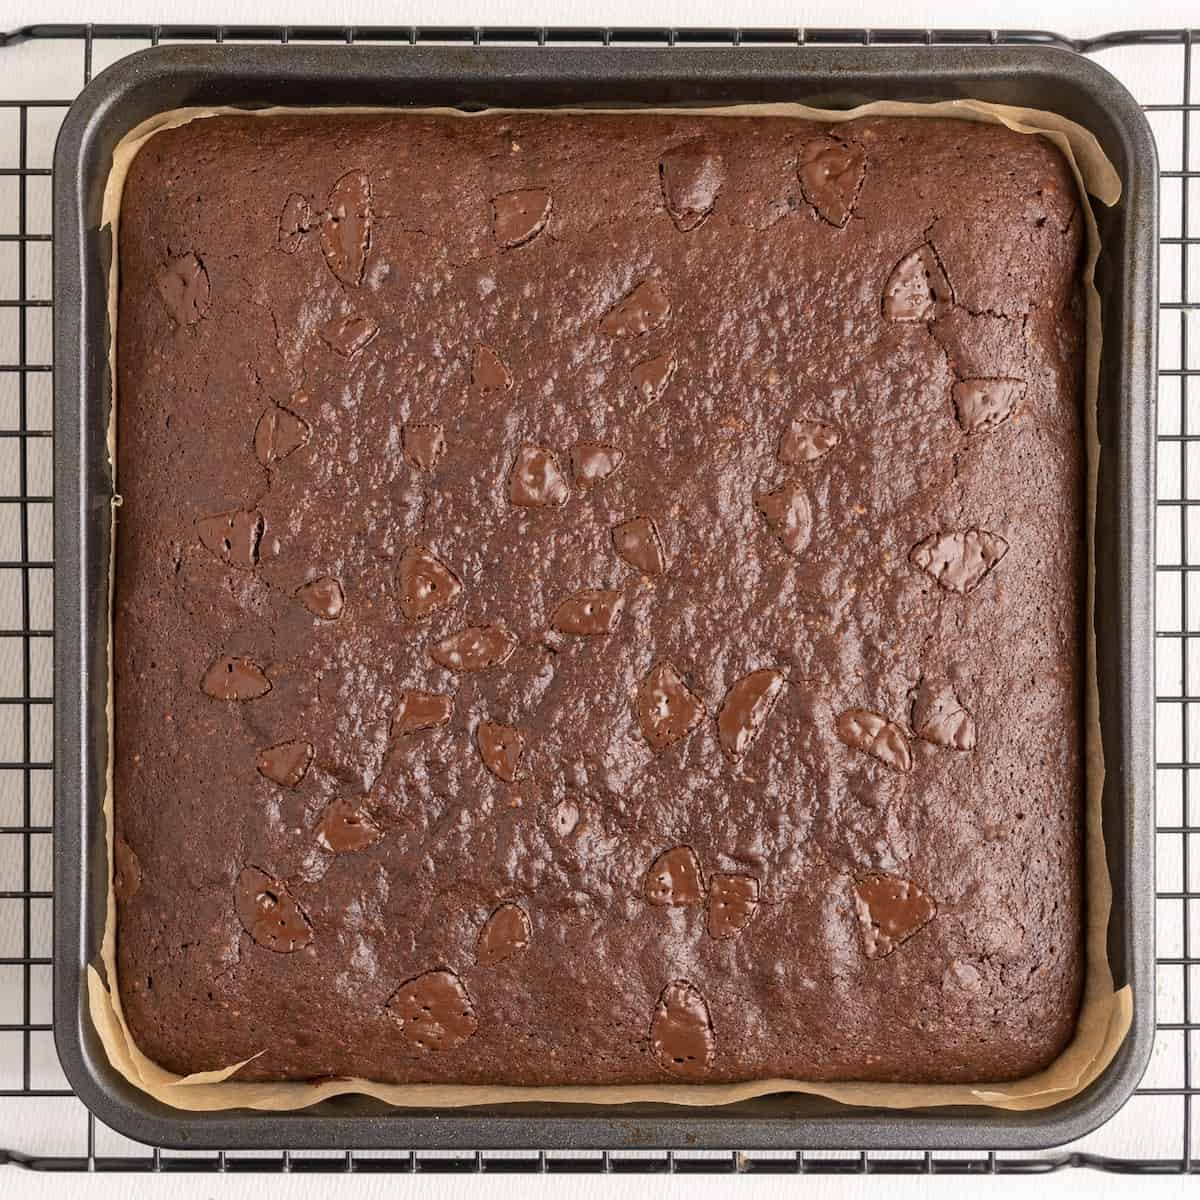 The baked brownie in a tin on a wire cooling rack.